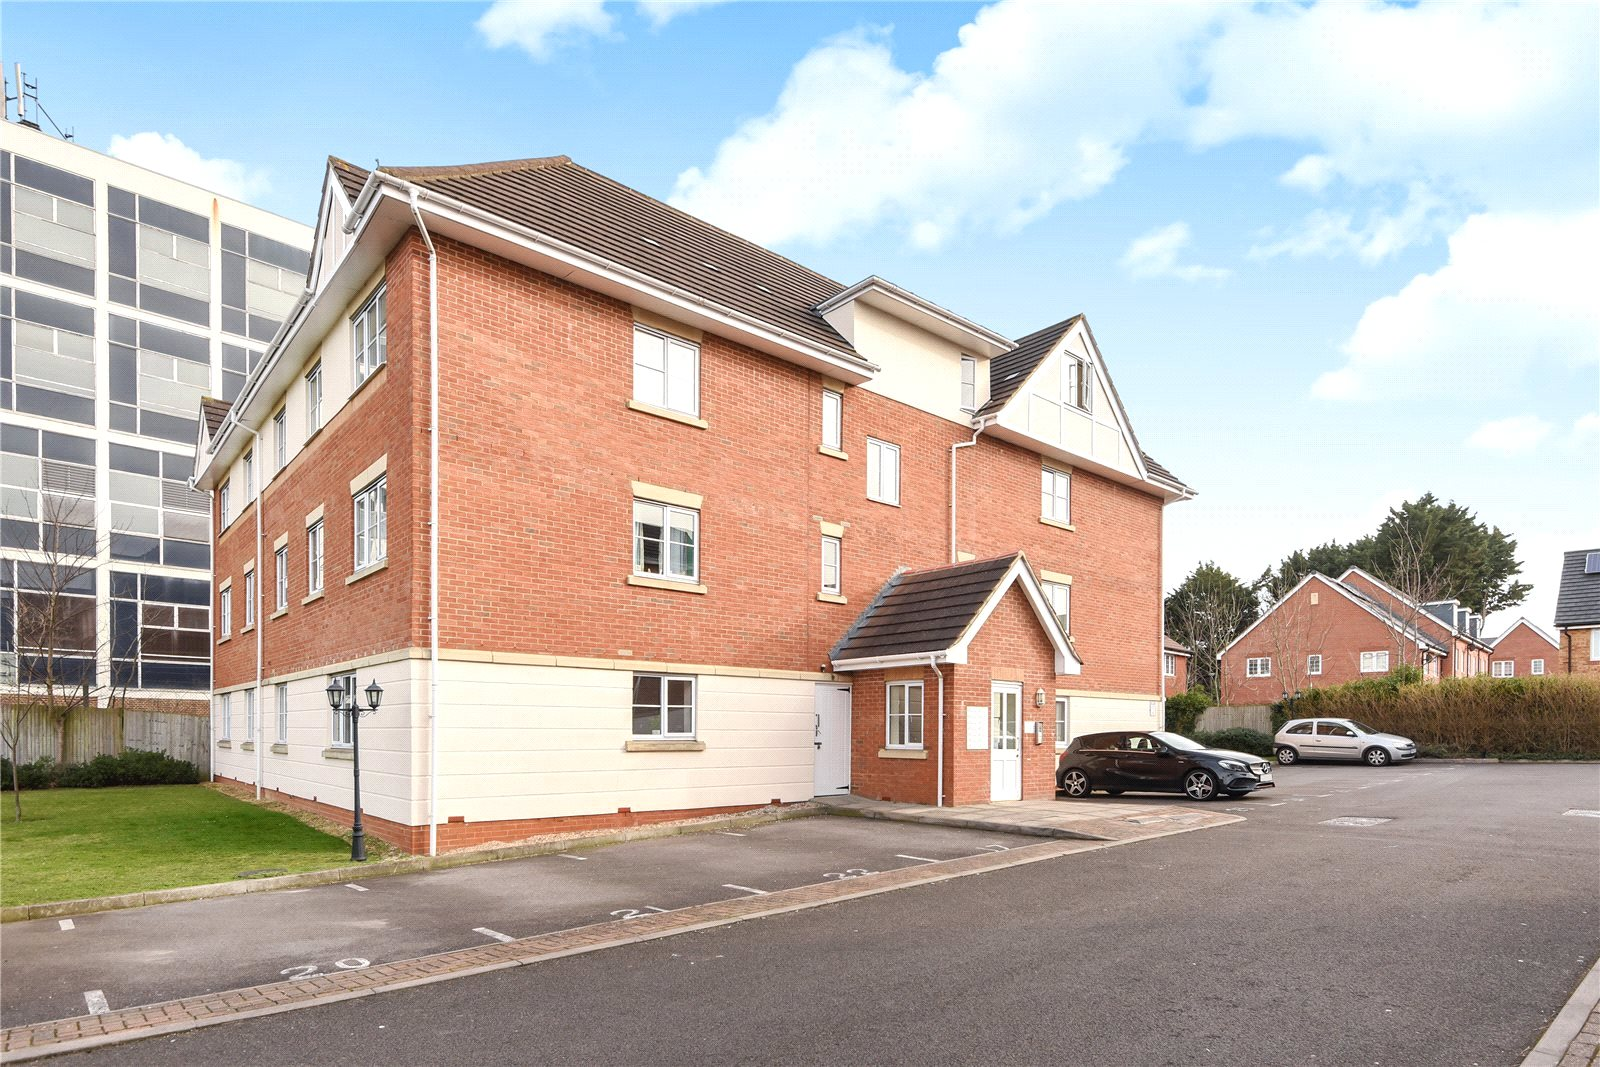 2 Bedrooms Apartment Flat for sale in Avenue Heights, Basingstoke Road, Reading, Berkshire, RG2